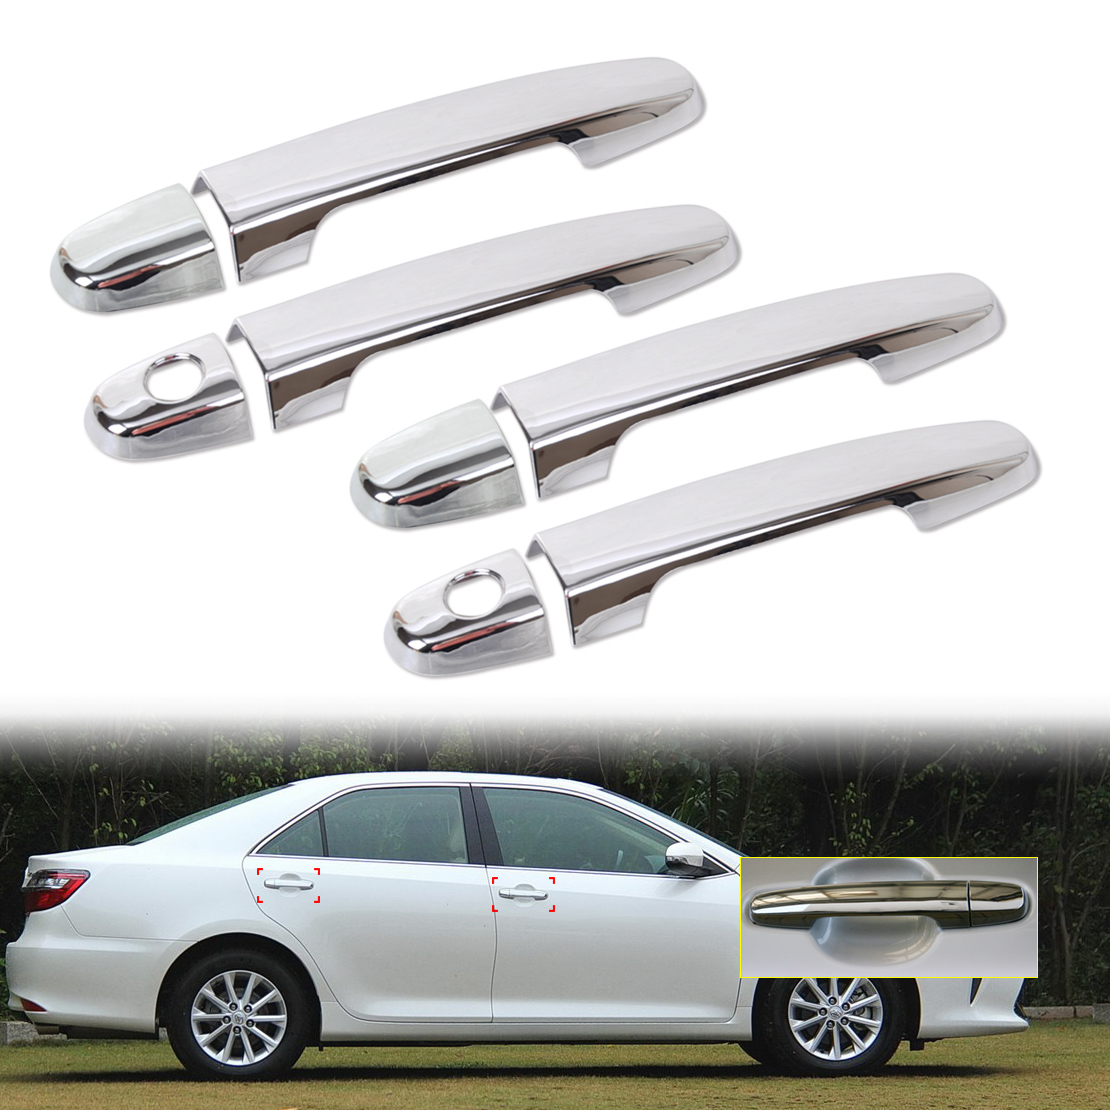 For Toyota Camry 2018 Chrome Door Handle Cover Molding Trim With Smart Key Hole